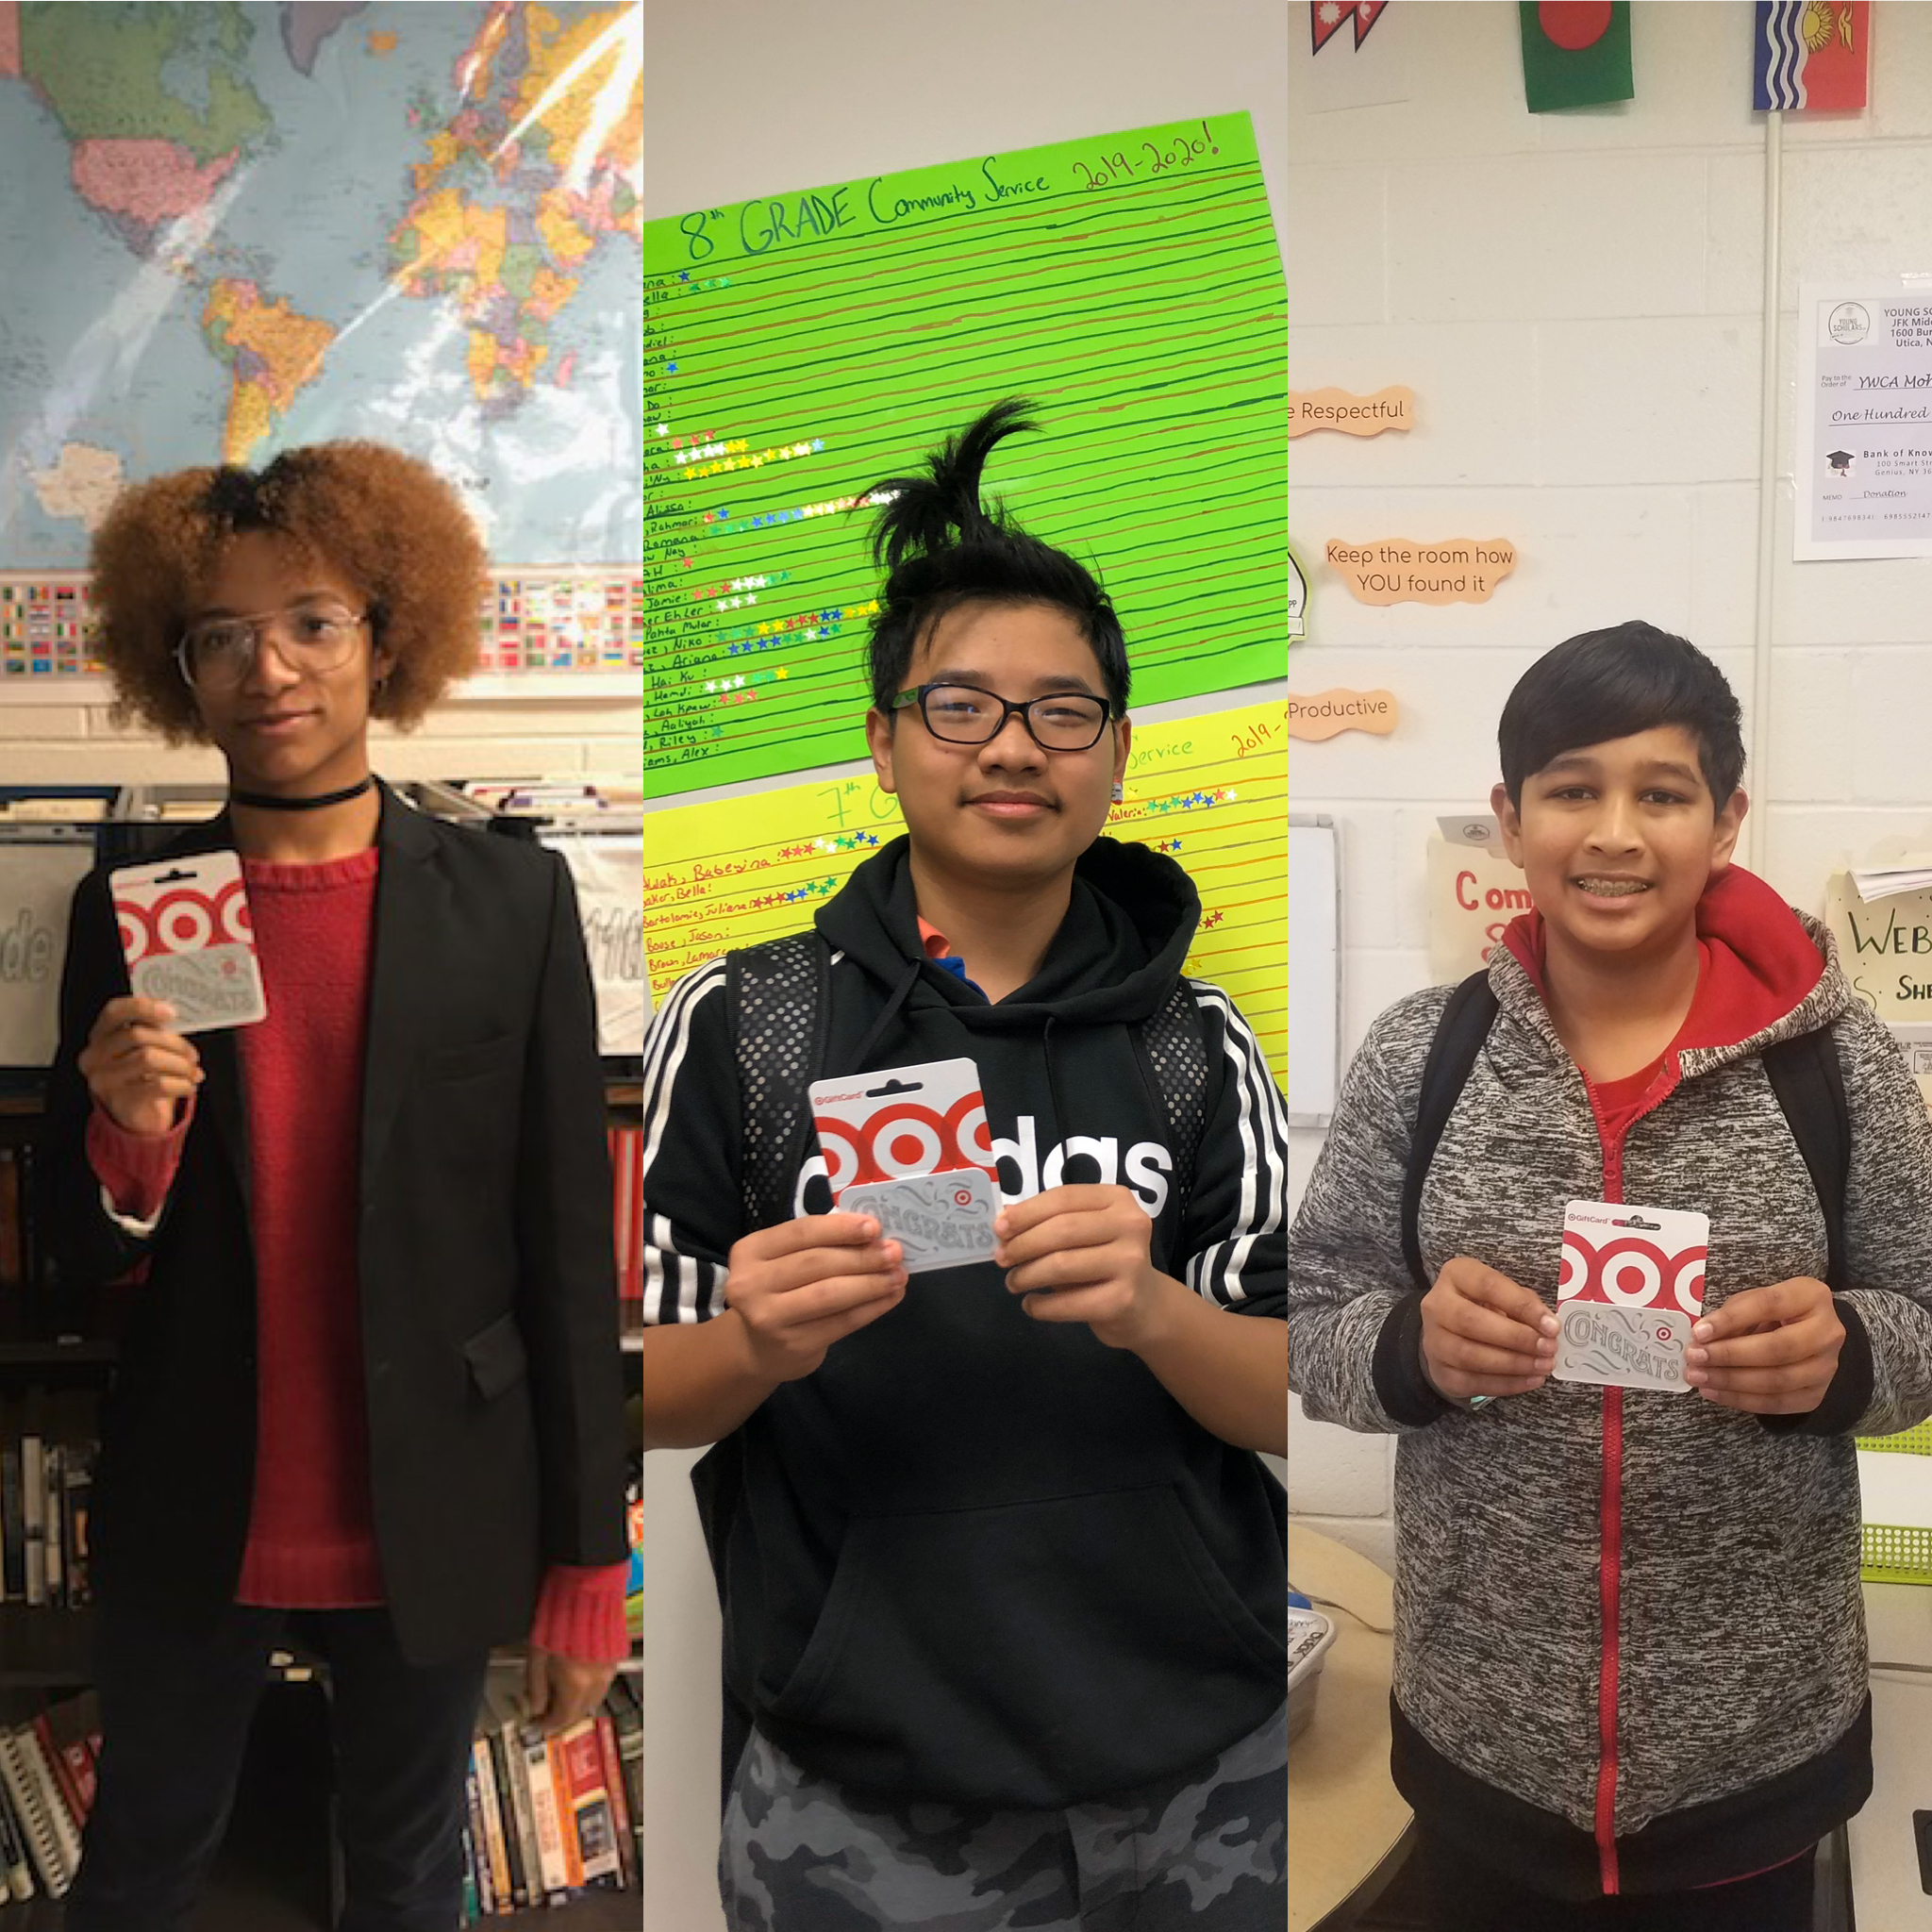 Three Young Scholars are pictured with Target gift cards as an award for good attendance